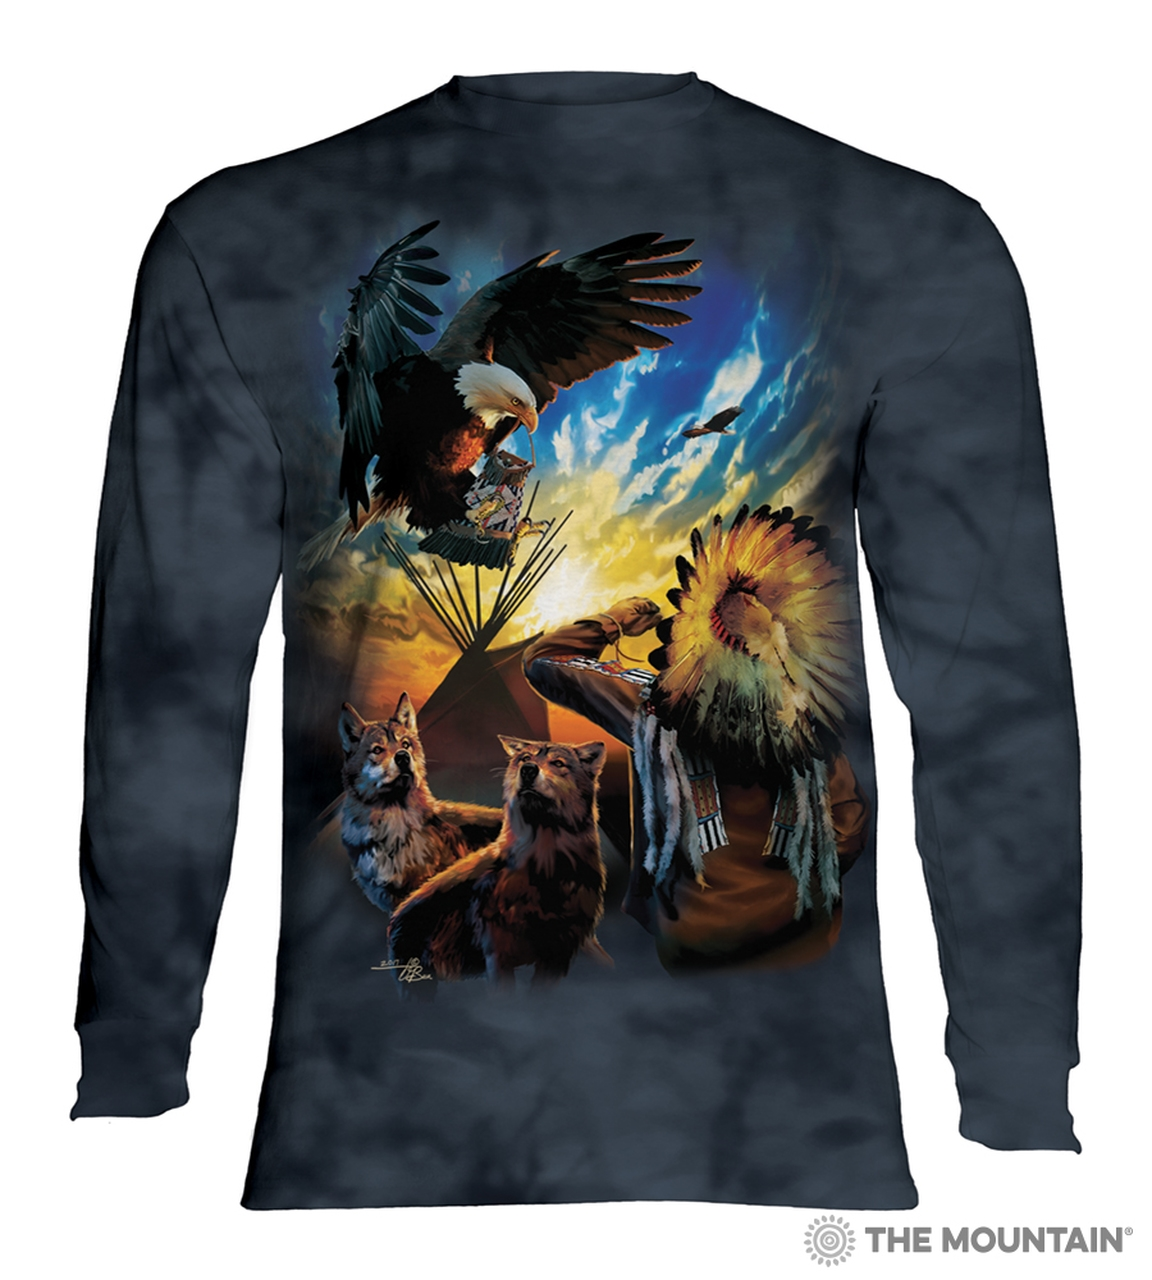 Eagle Prayer - 45-5957 - Adult Long Sleeve T-shirt